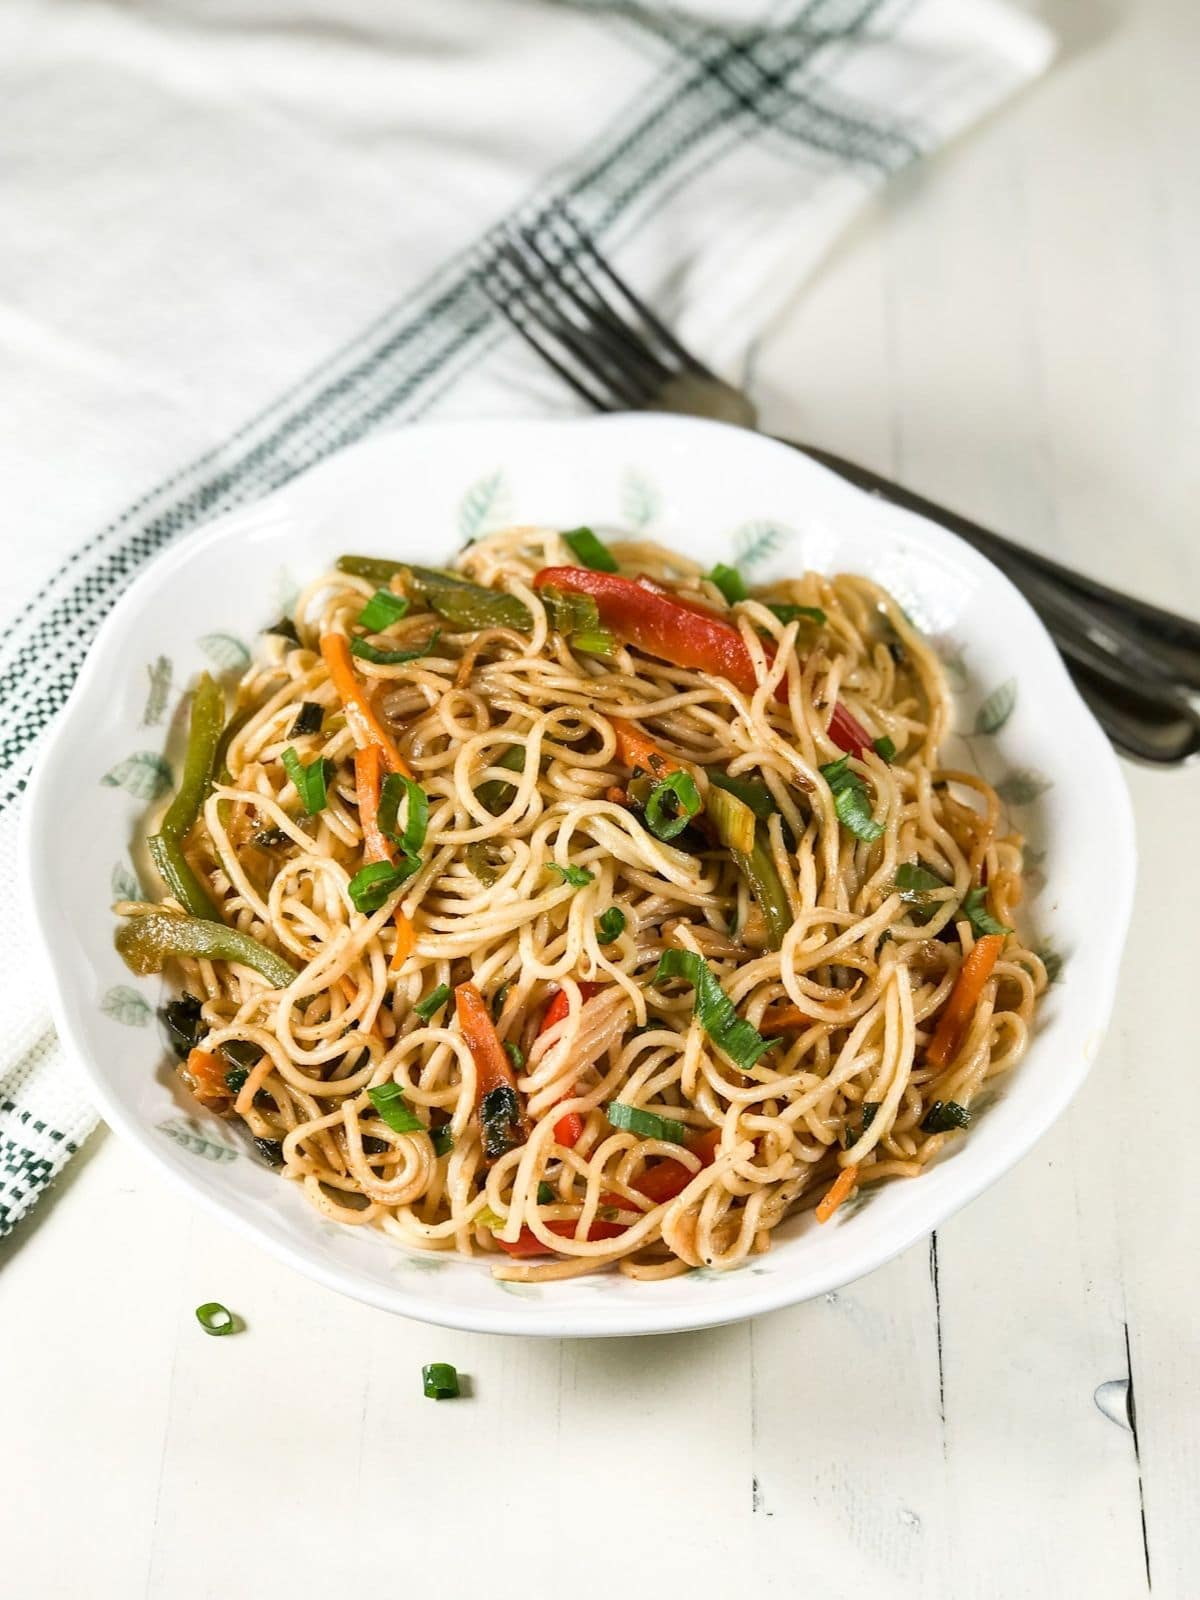 A white plate is filled with noodles and topped with spring onions